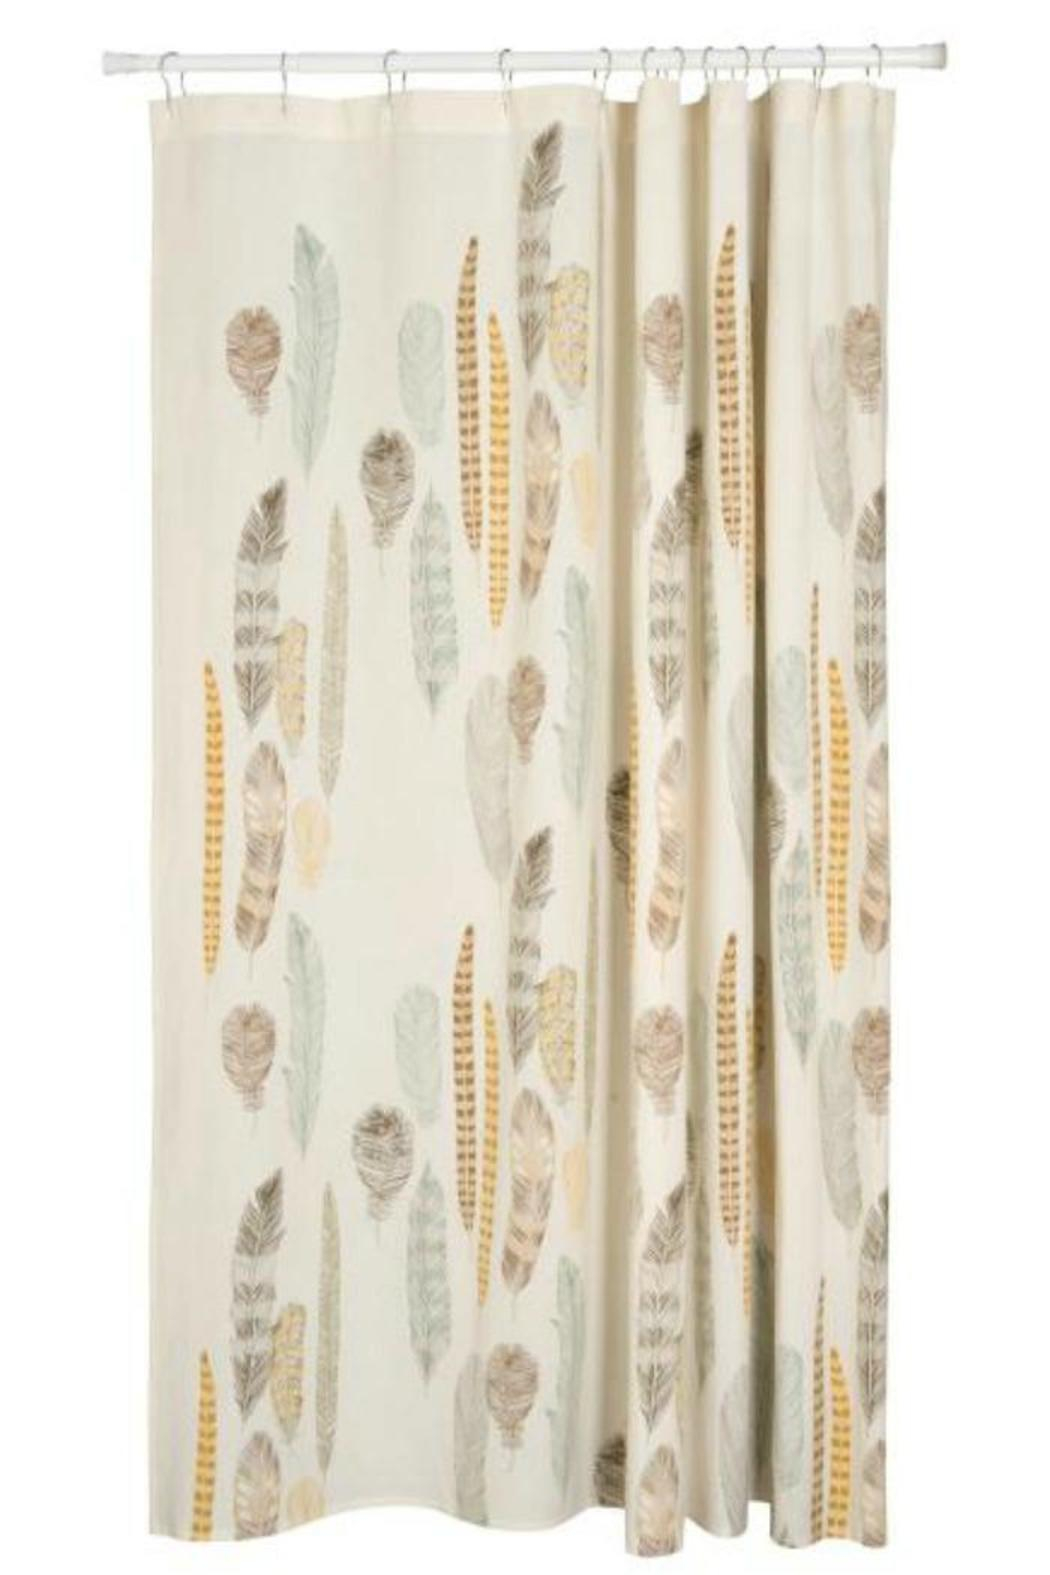 Danica Studio Quill Shower Curtain From Tennessee The Market On Throughout Size 1050 X 1575